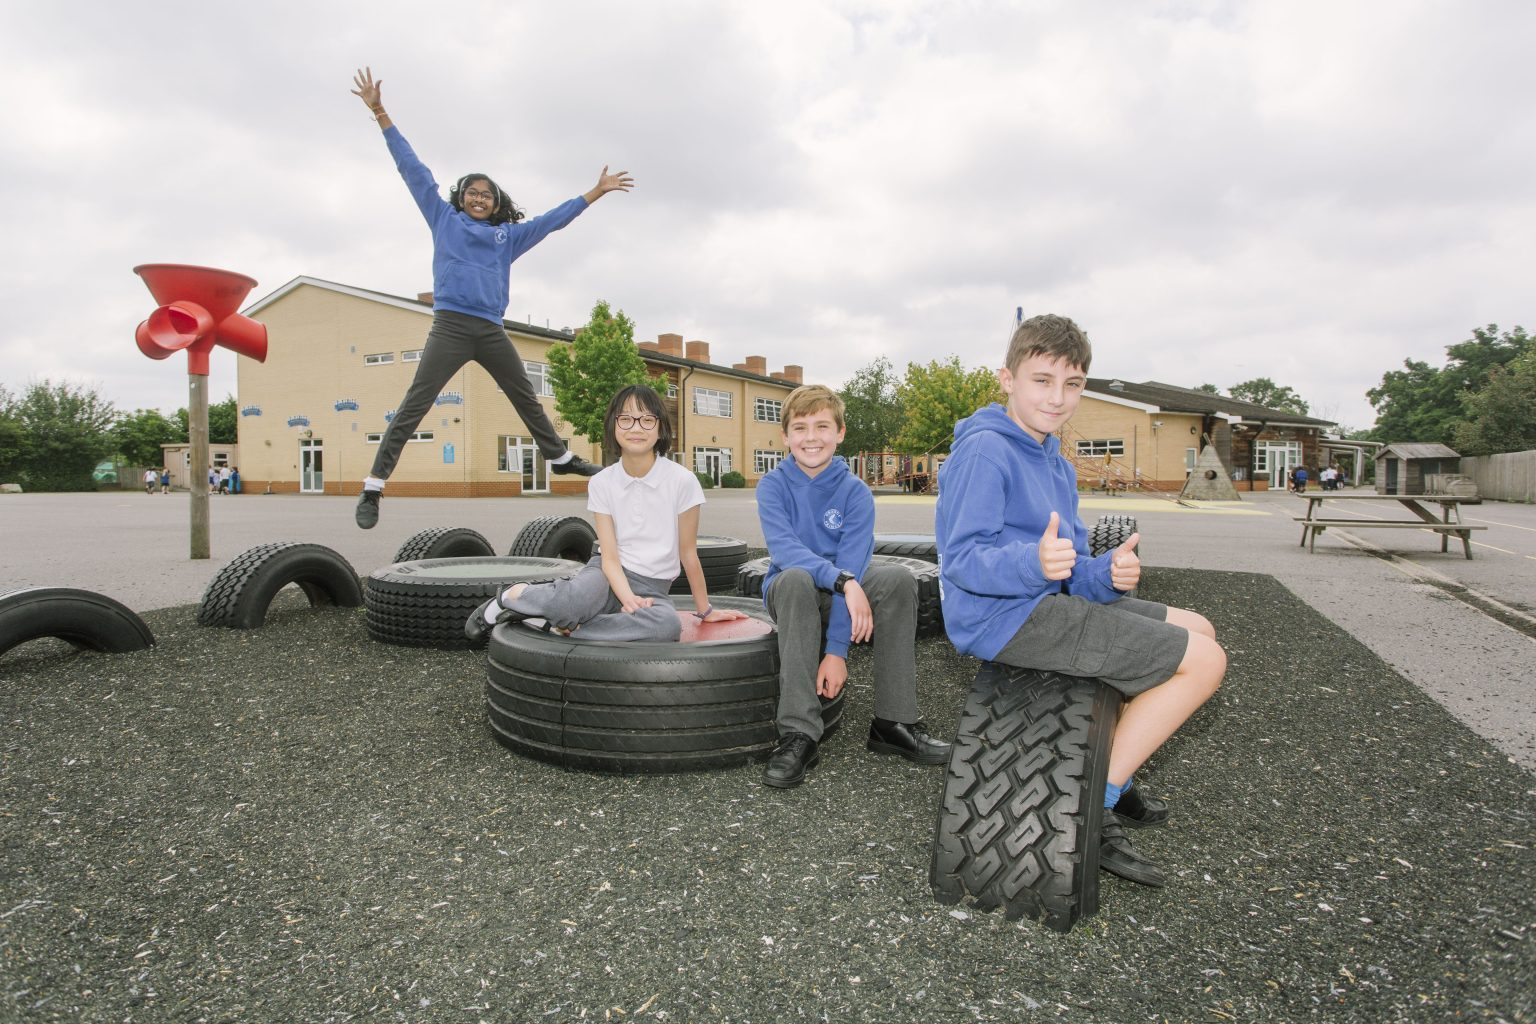 Grange Primary School pupils in the playground - one jumping in the air, one sitting with his thumbs up